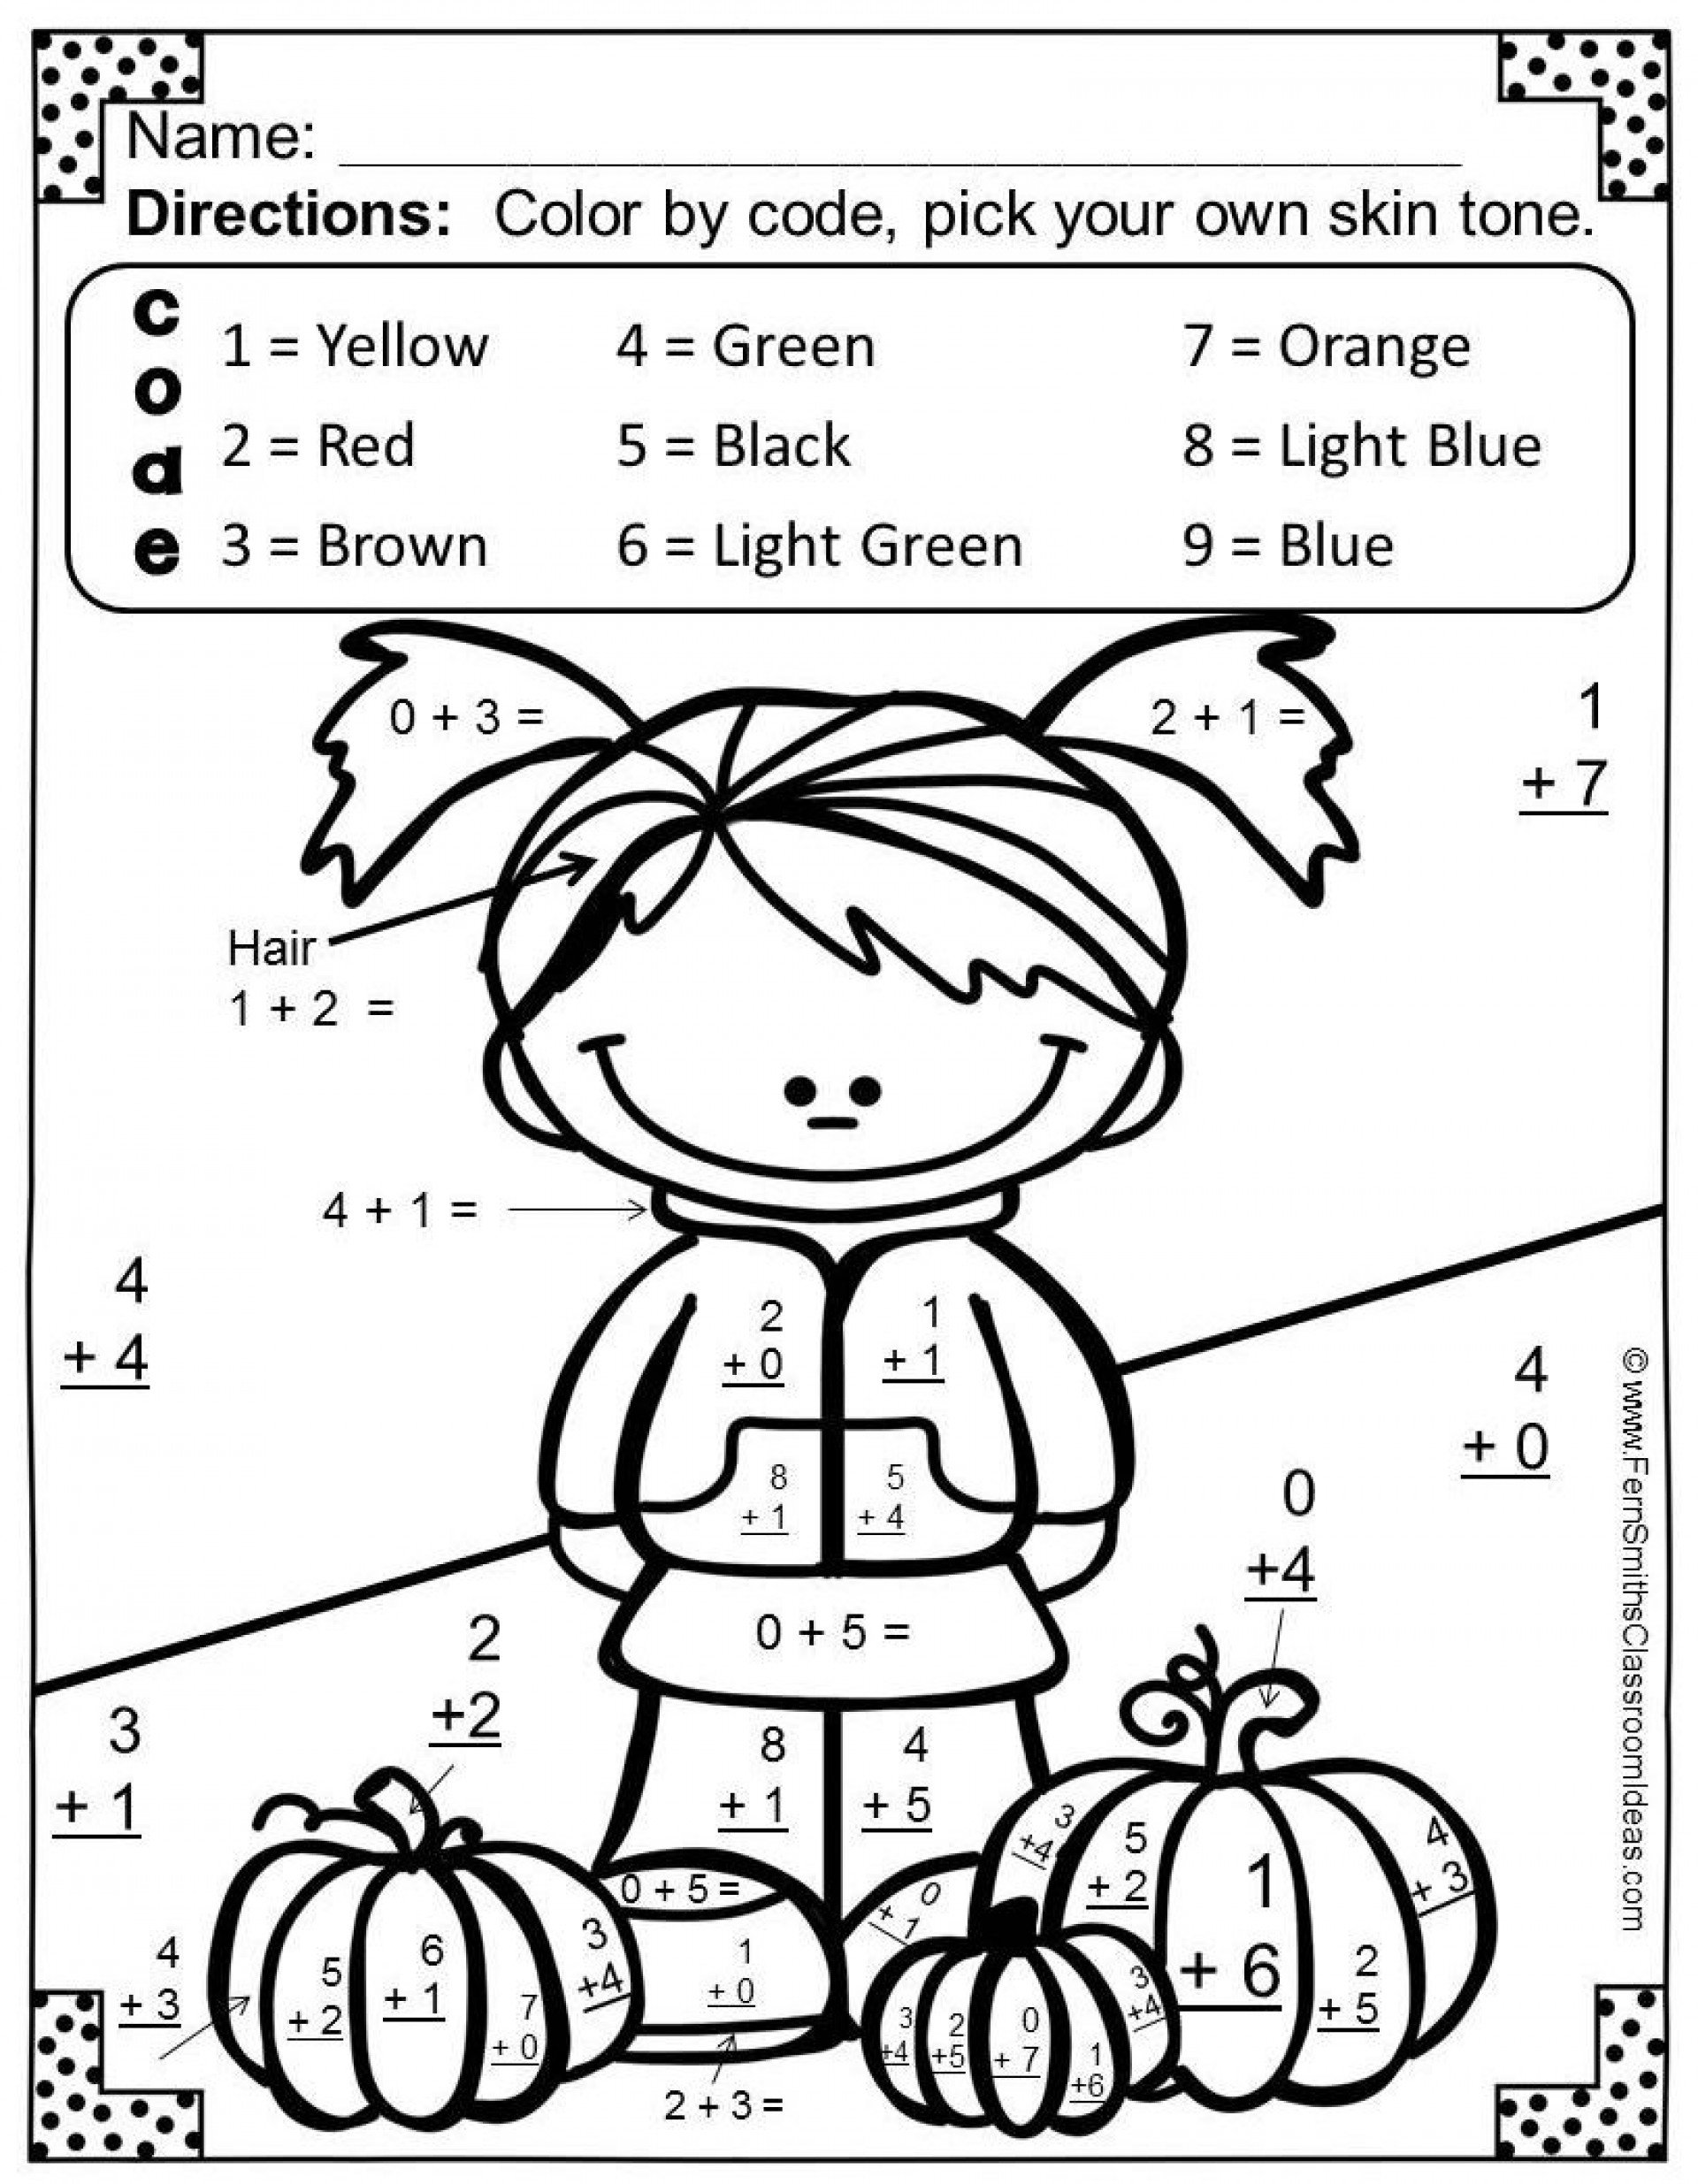 coloring math worksheets math coloring pages best coloring pages for kids math worksheets coloring